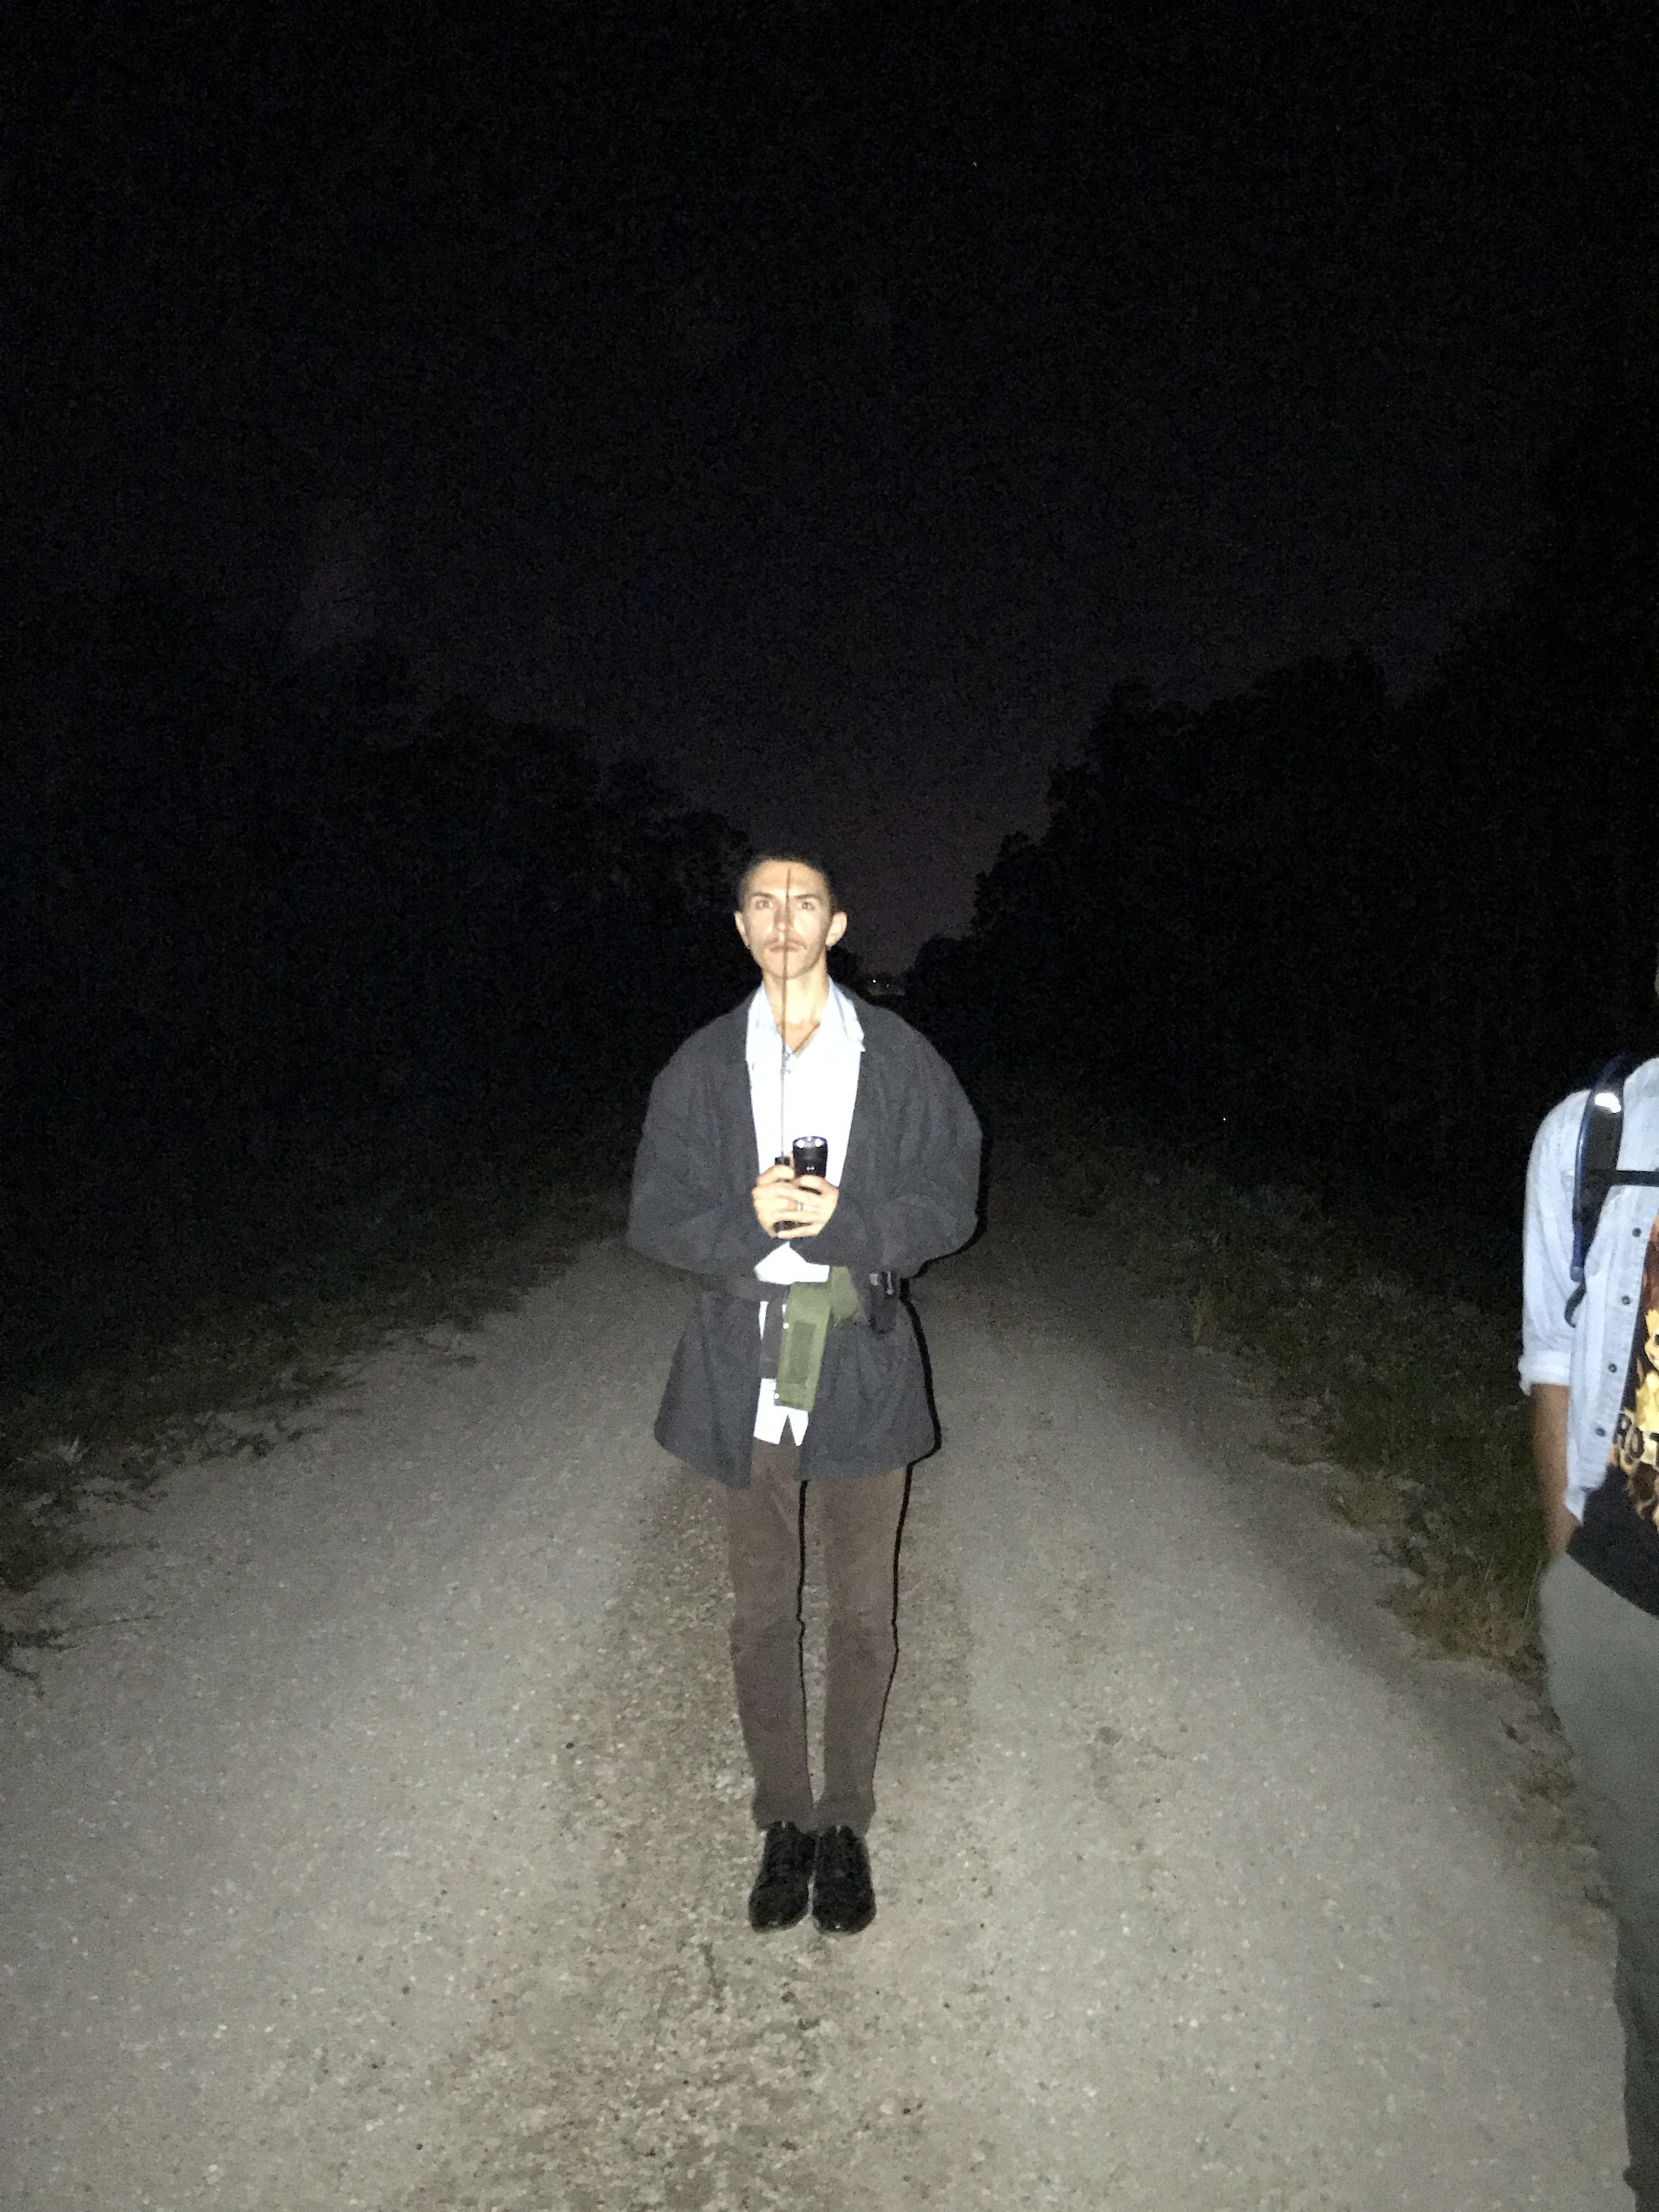 Copy of Night hike